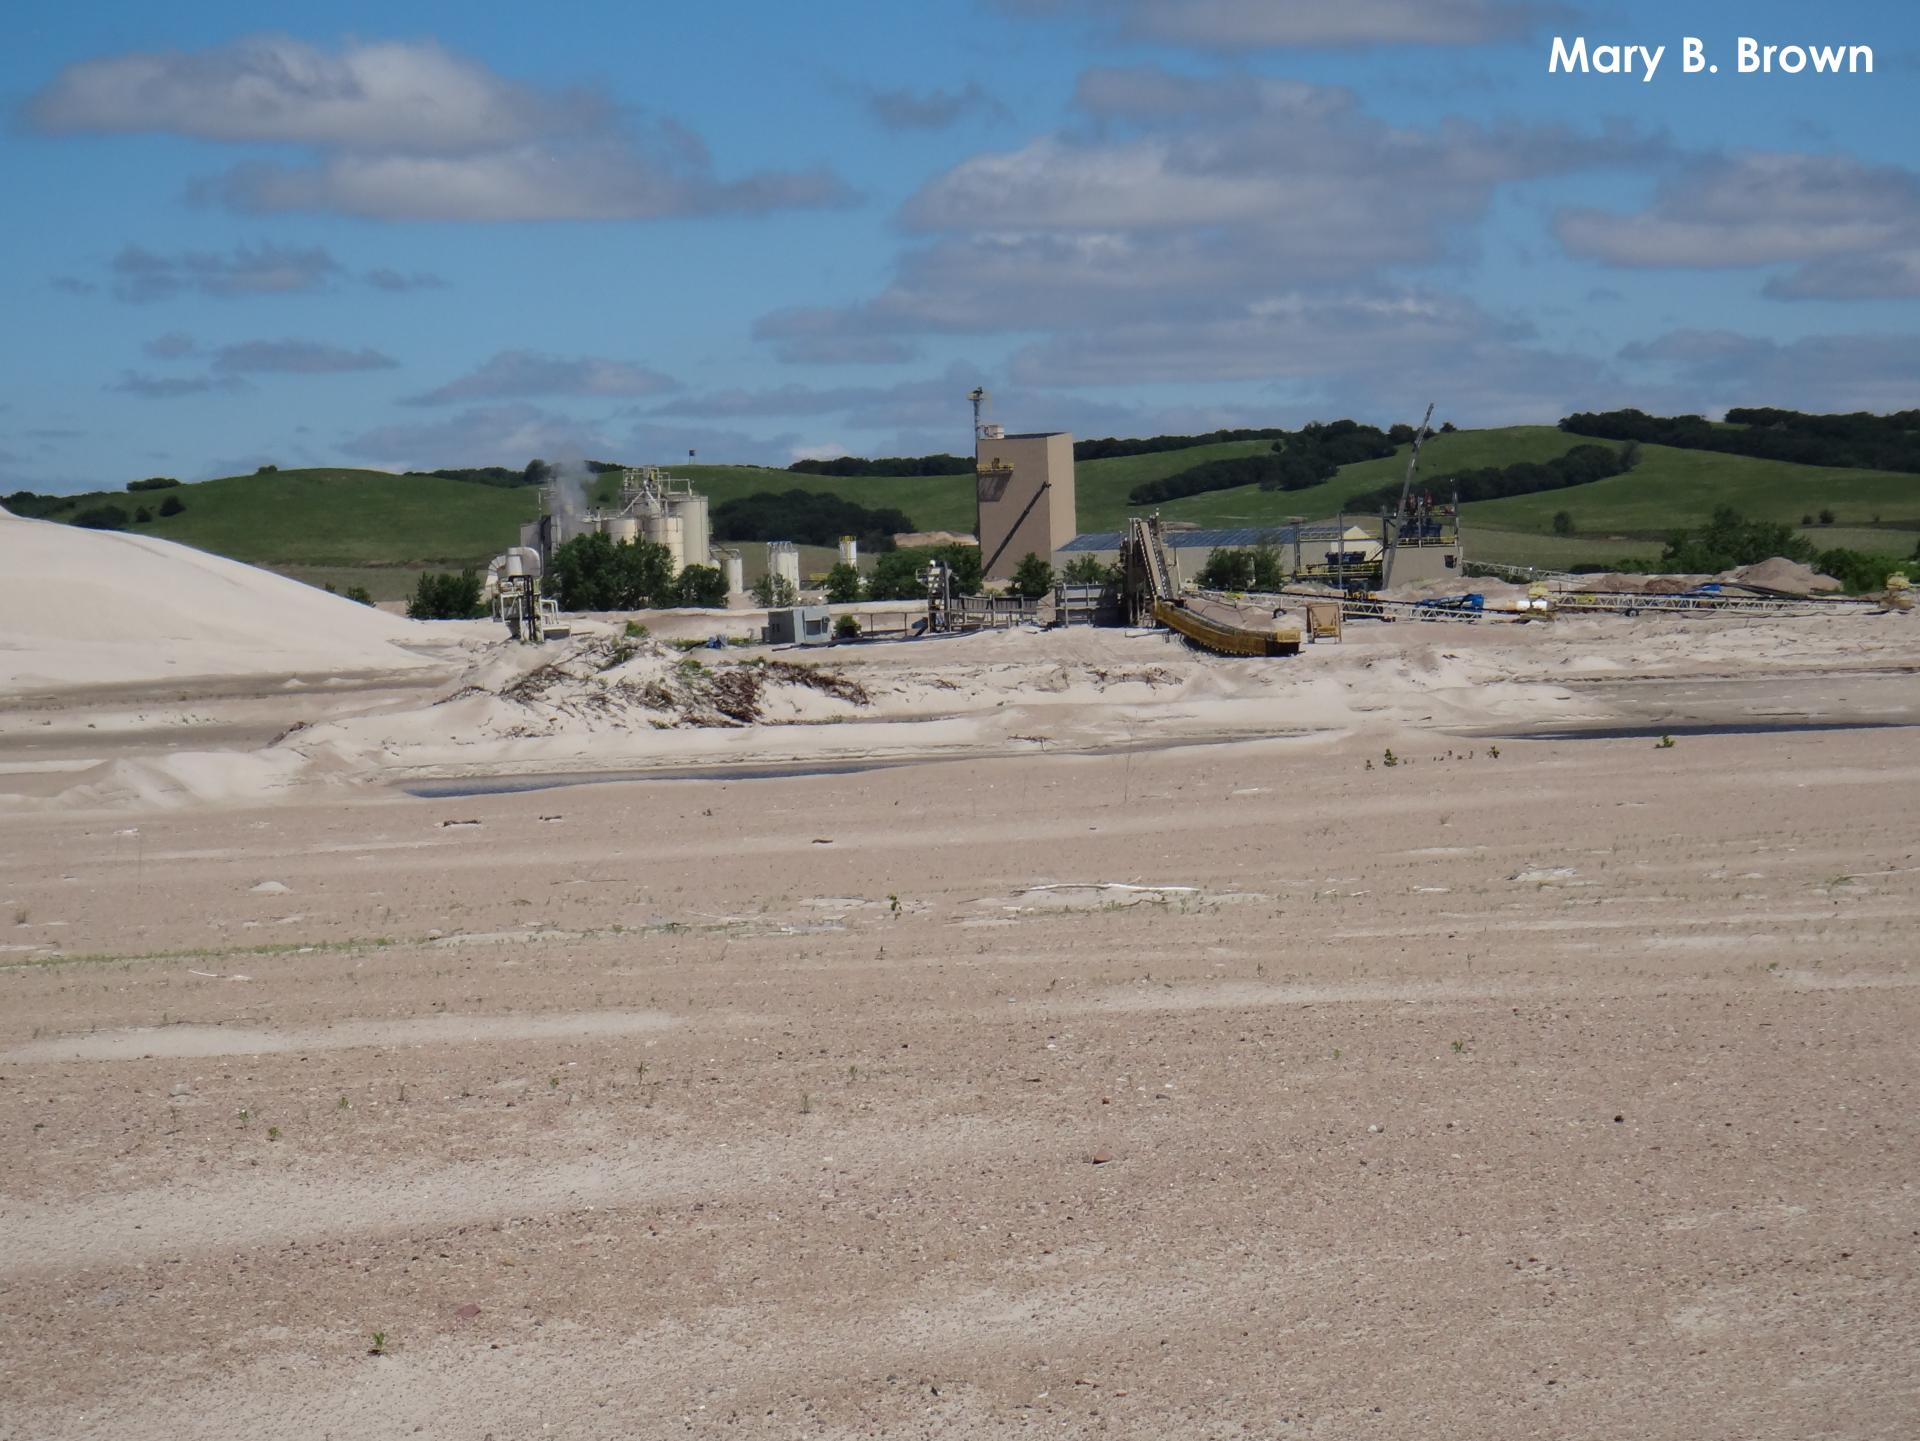 Sand and gravel mining operation